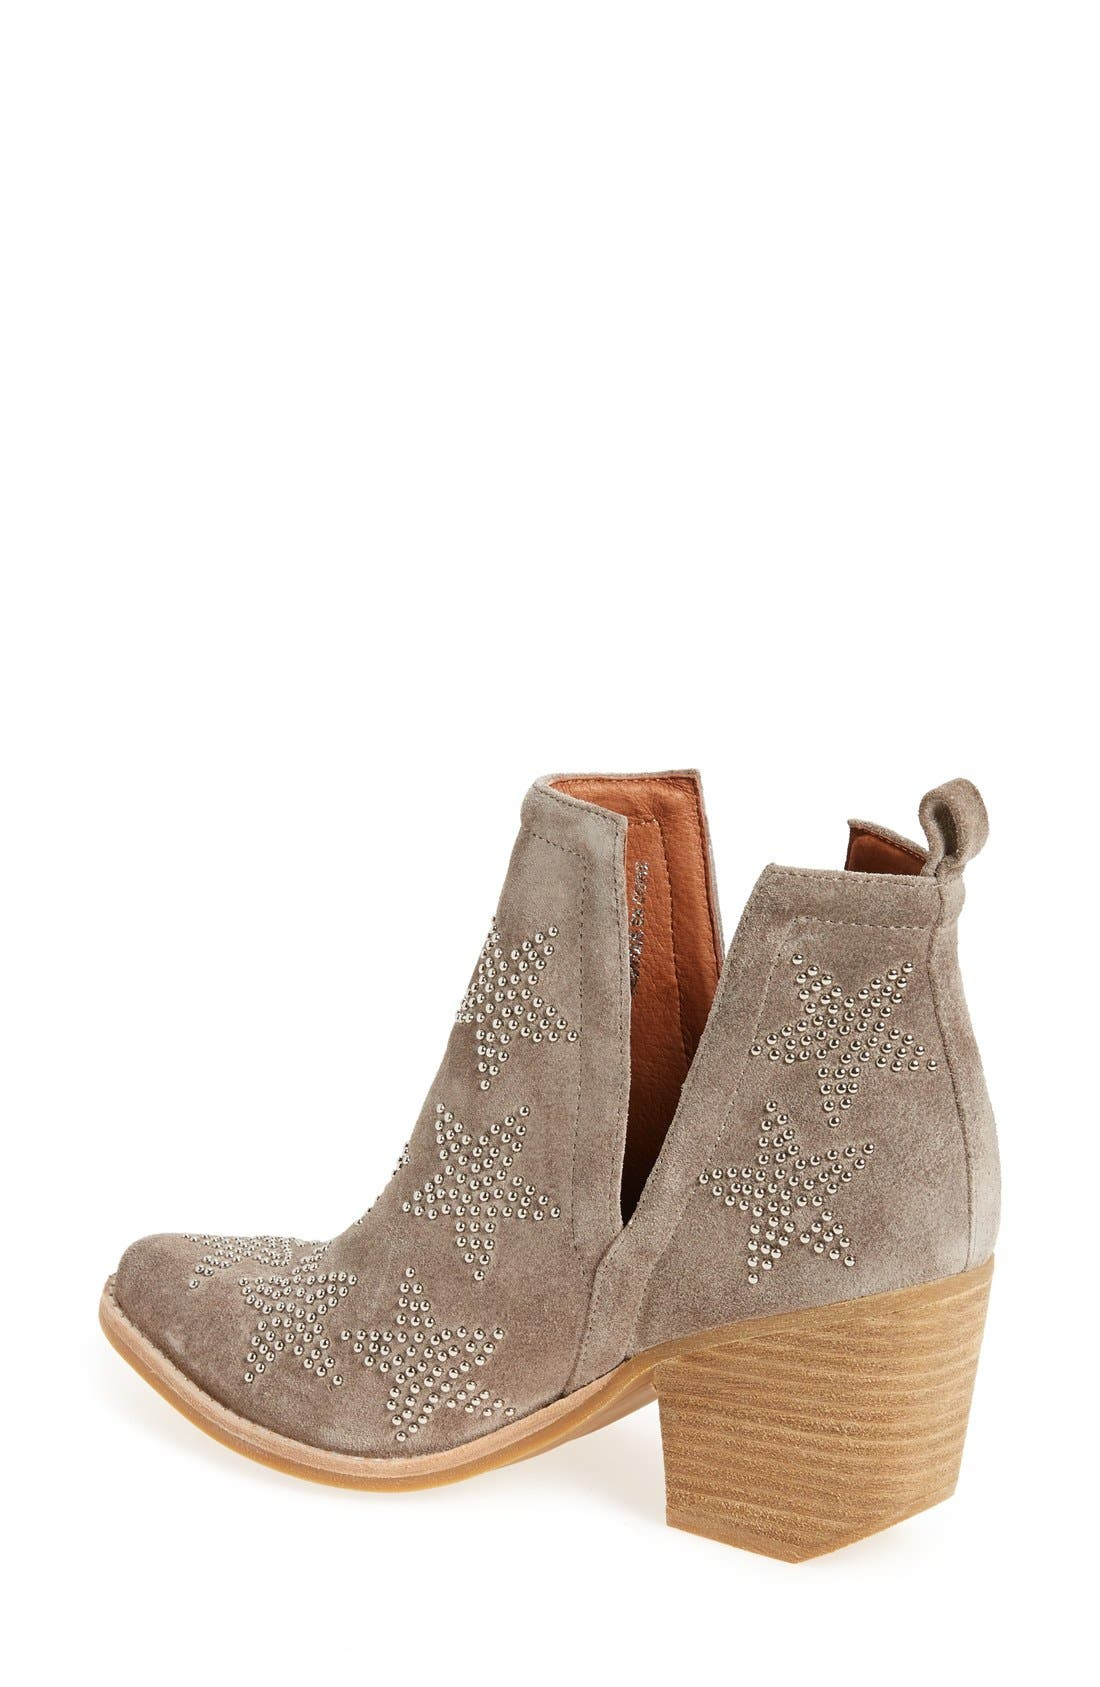 'Asterial' Star Studded Bootie,                             Alternate thumbnail 2, color,                             250